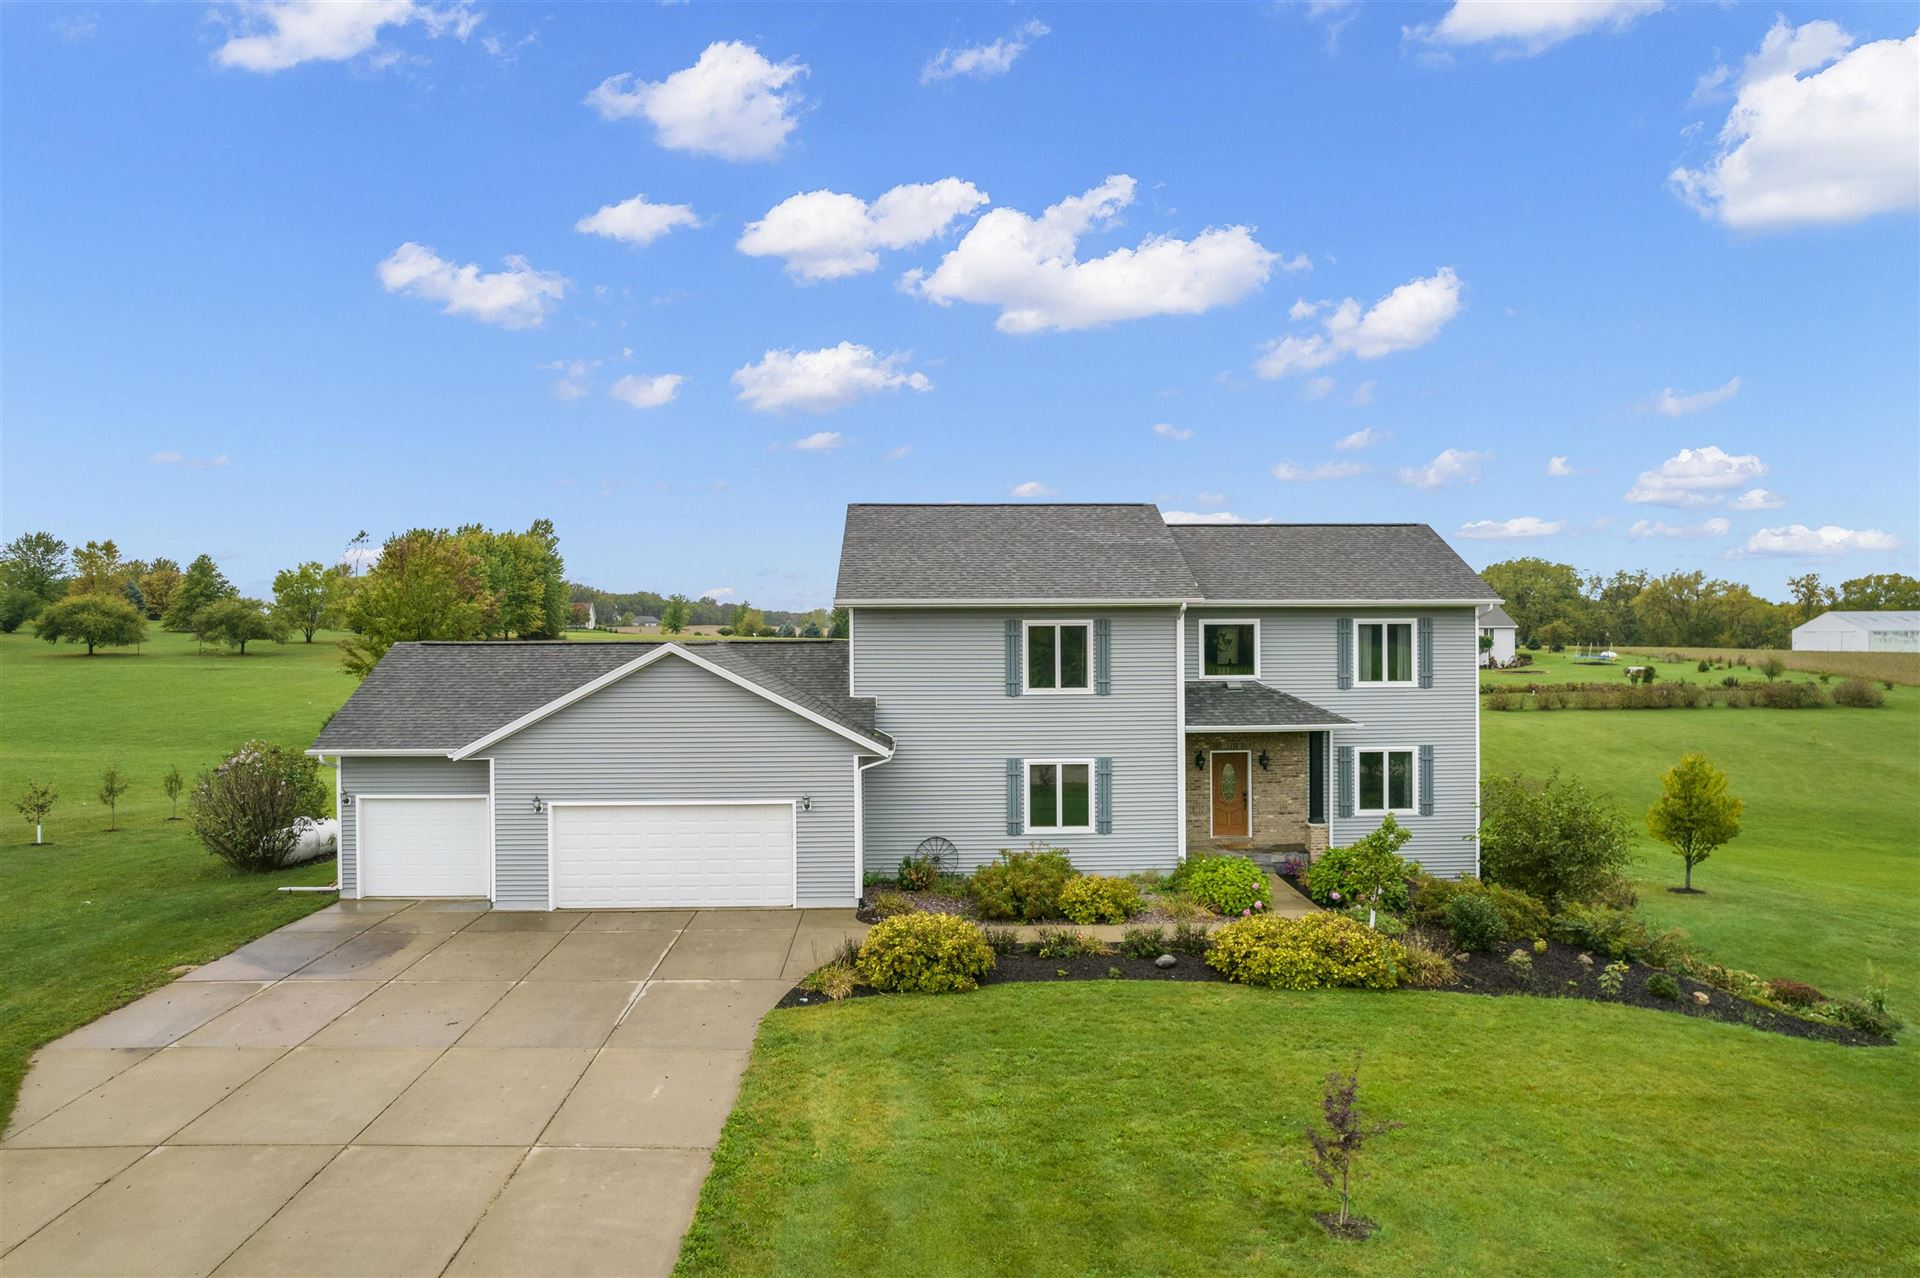 3488 Soldiers Ct, Dodgeville, WI 53533 - #: 1921528